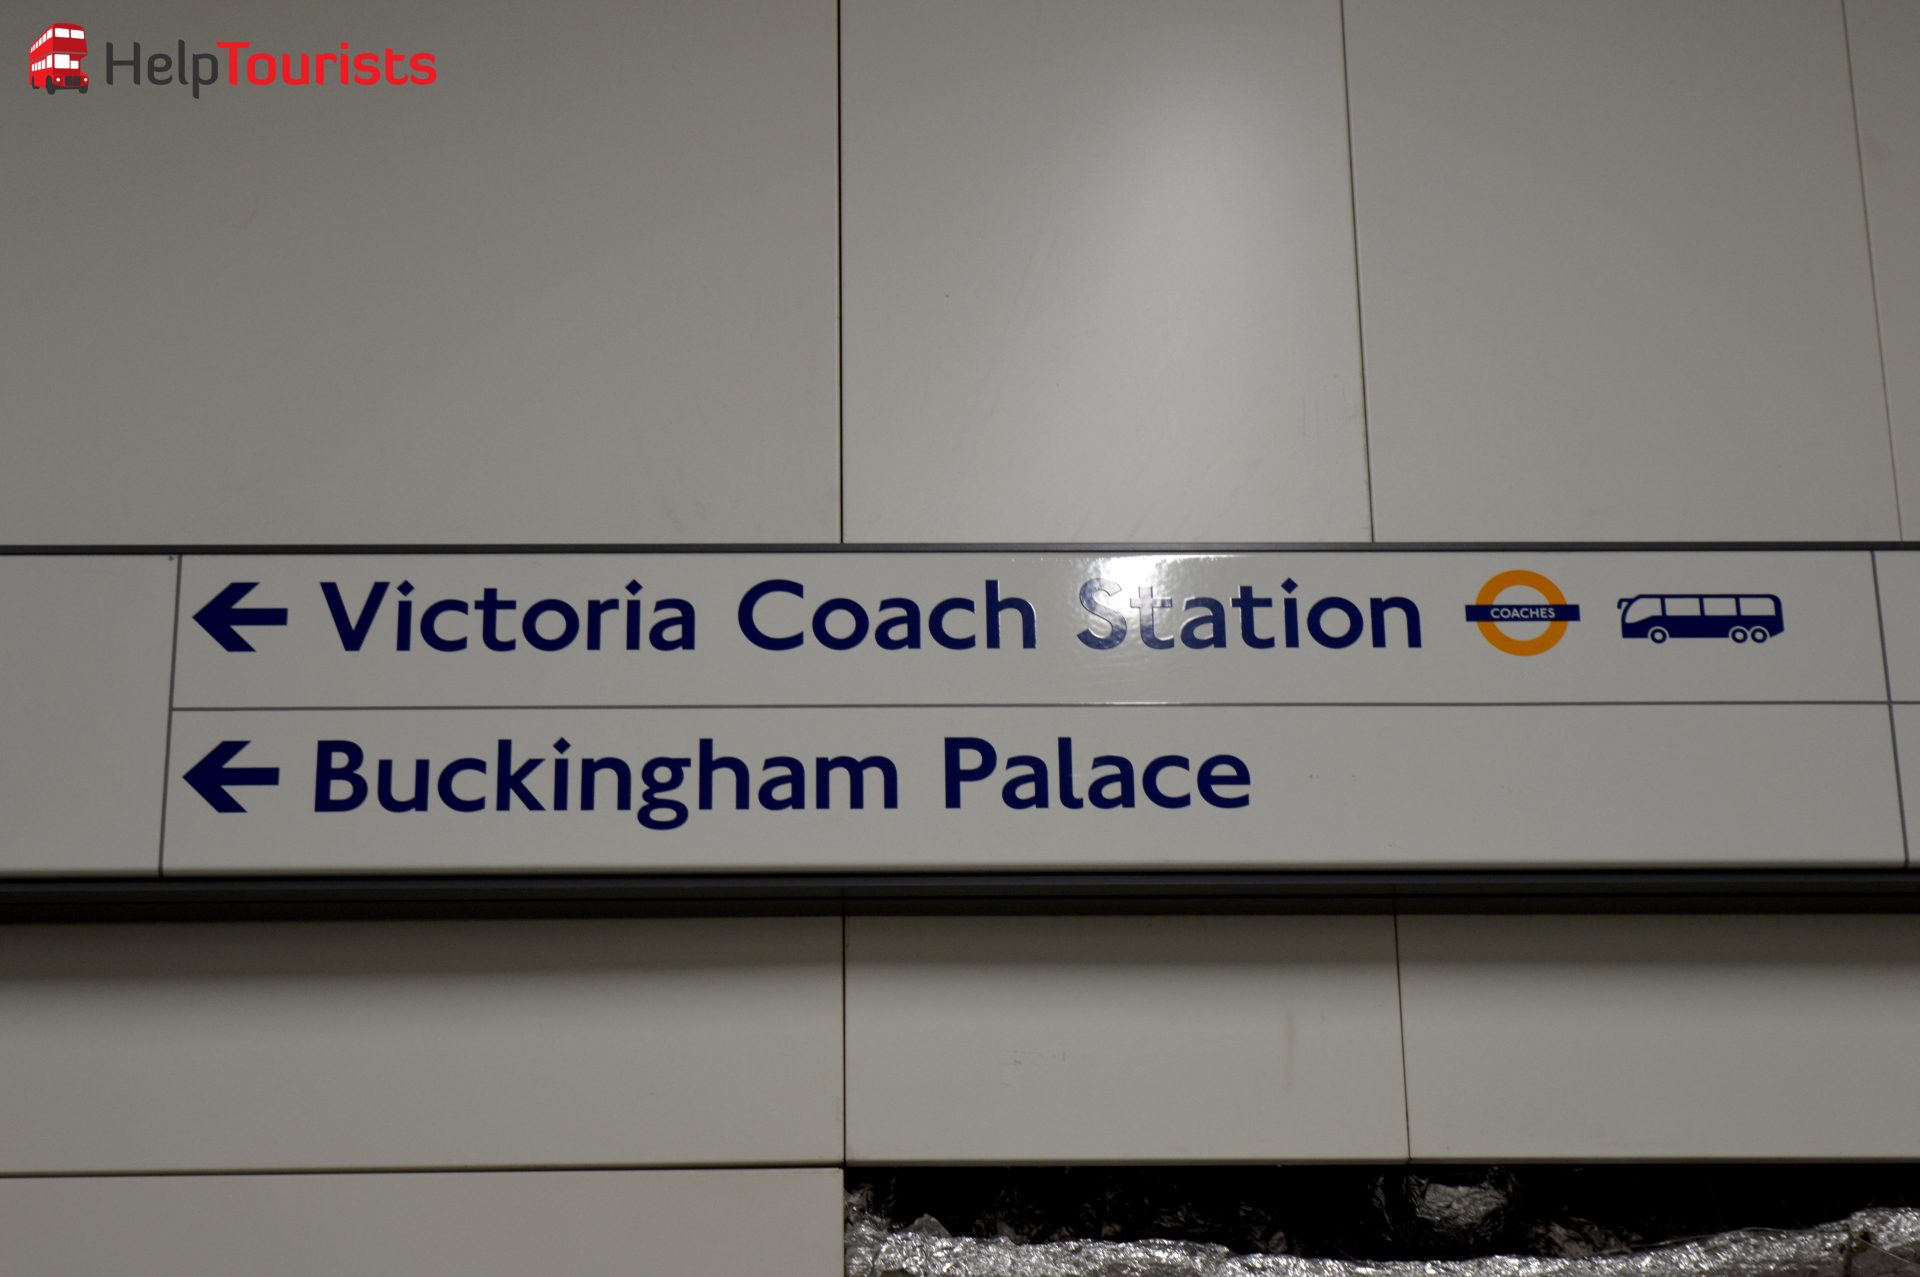 London VIctoria Station zum Buckingham Palace